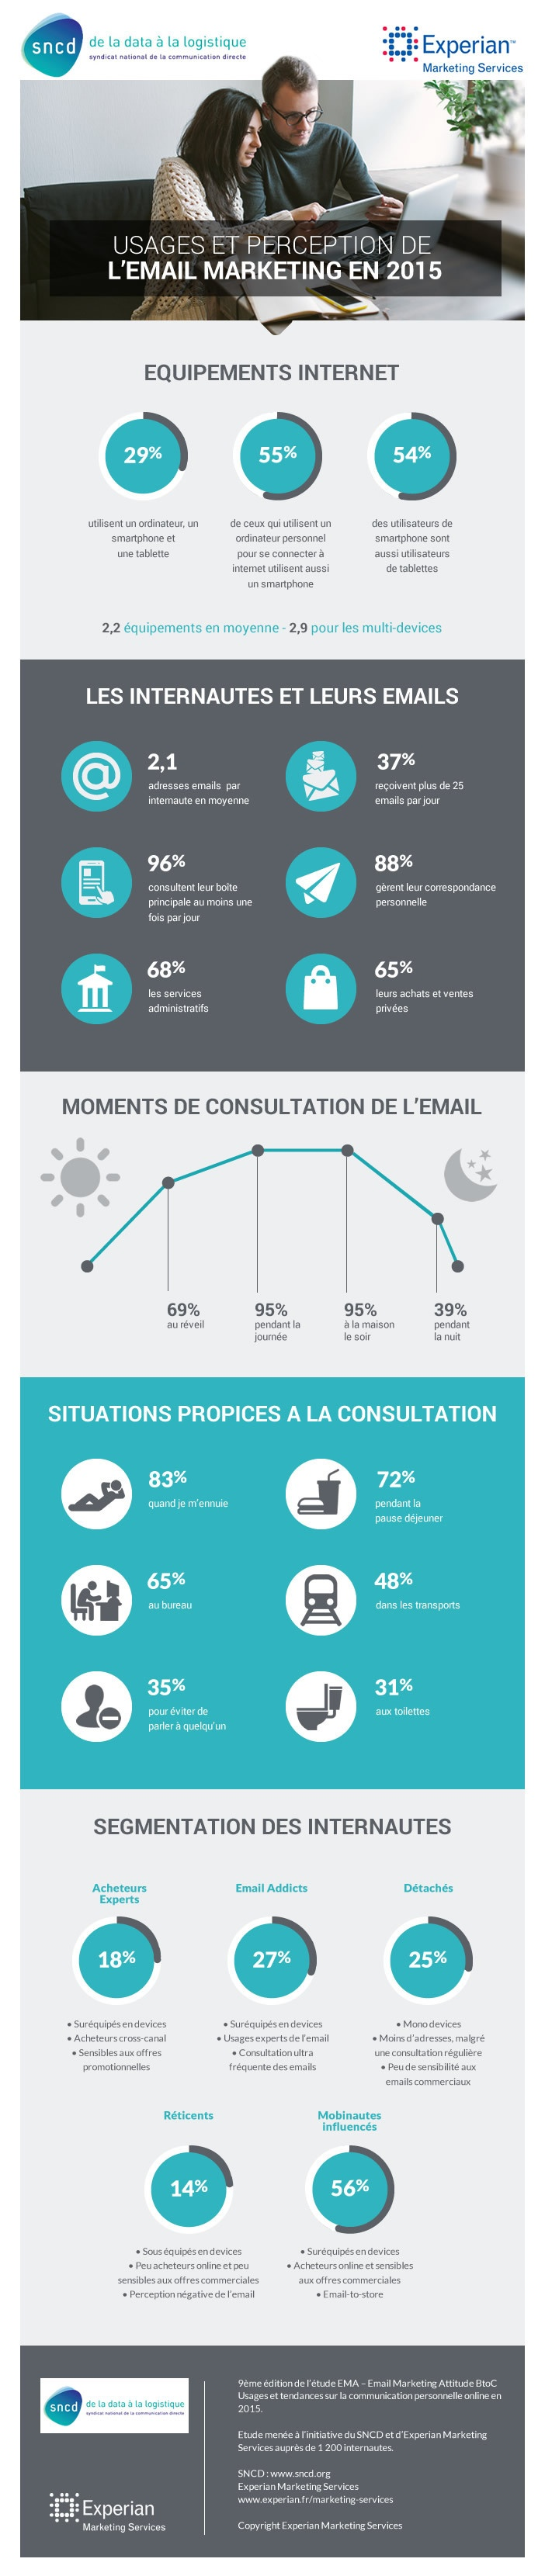 infographie tendance emailing 2015